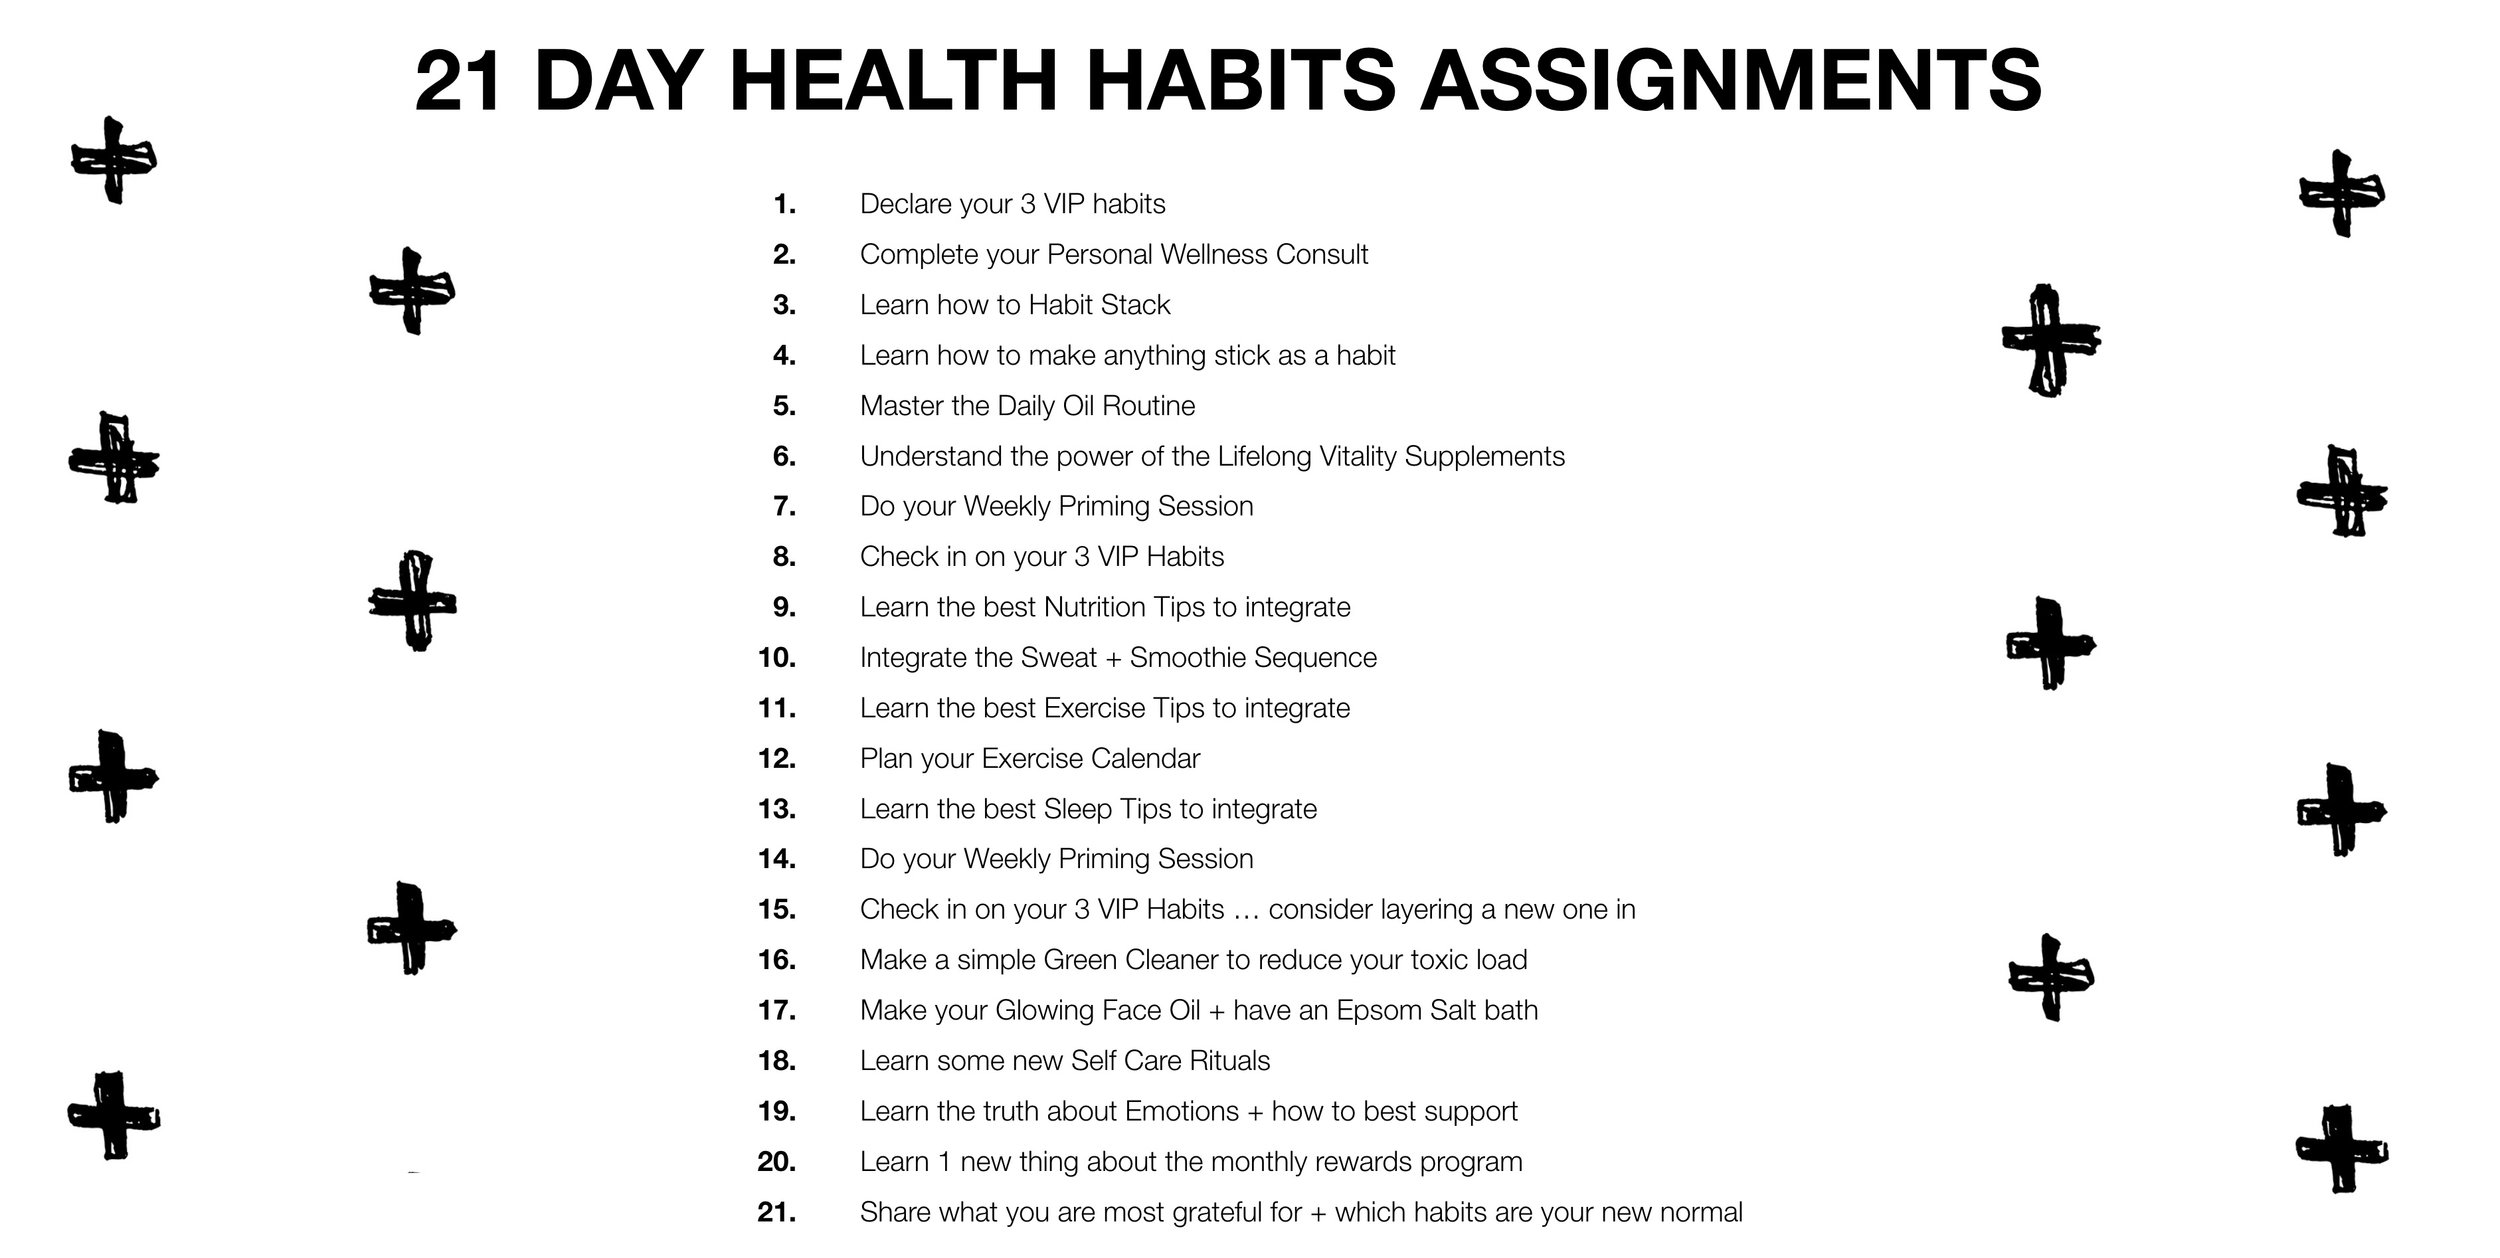 21 DAY healthy habits OVERVIEW.jpg